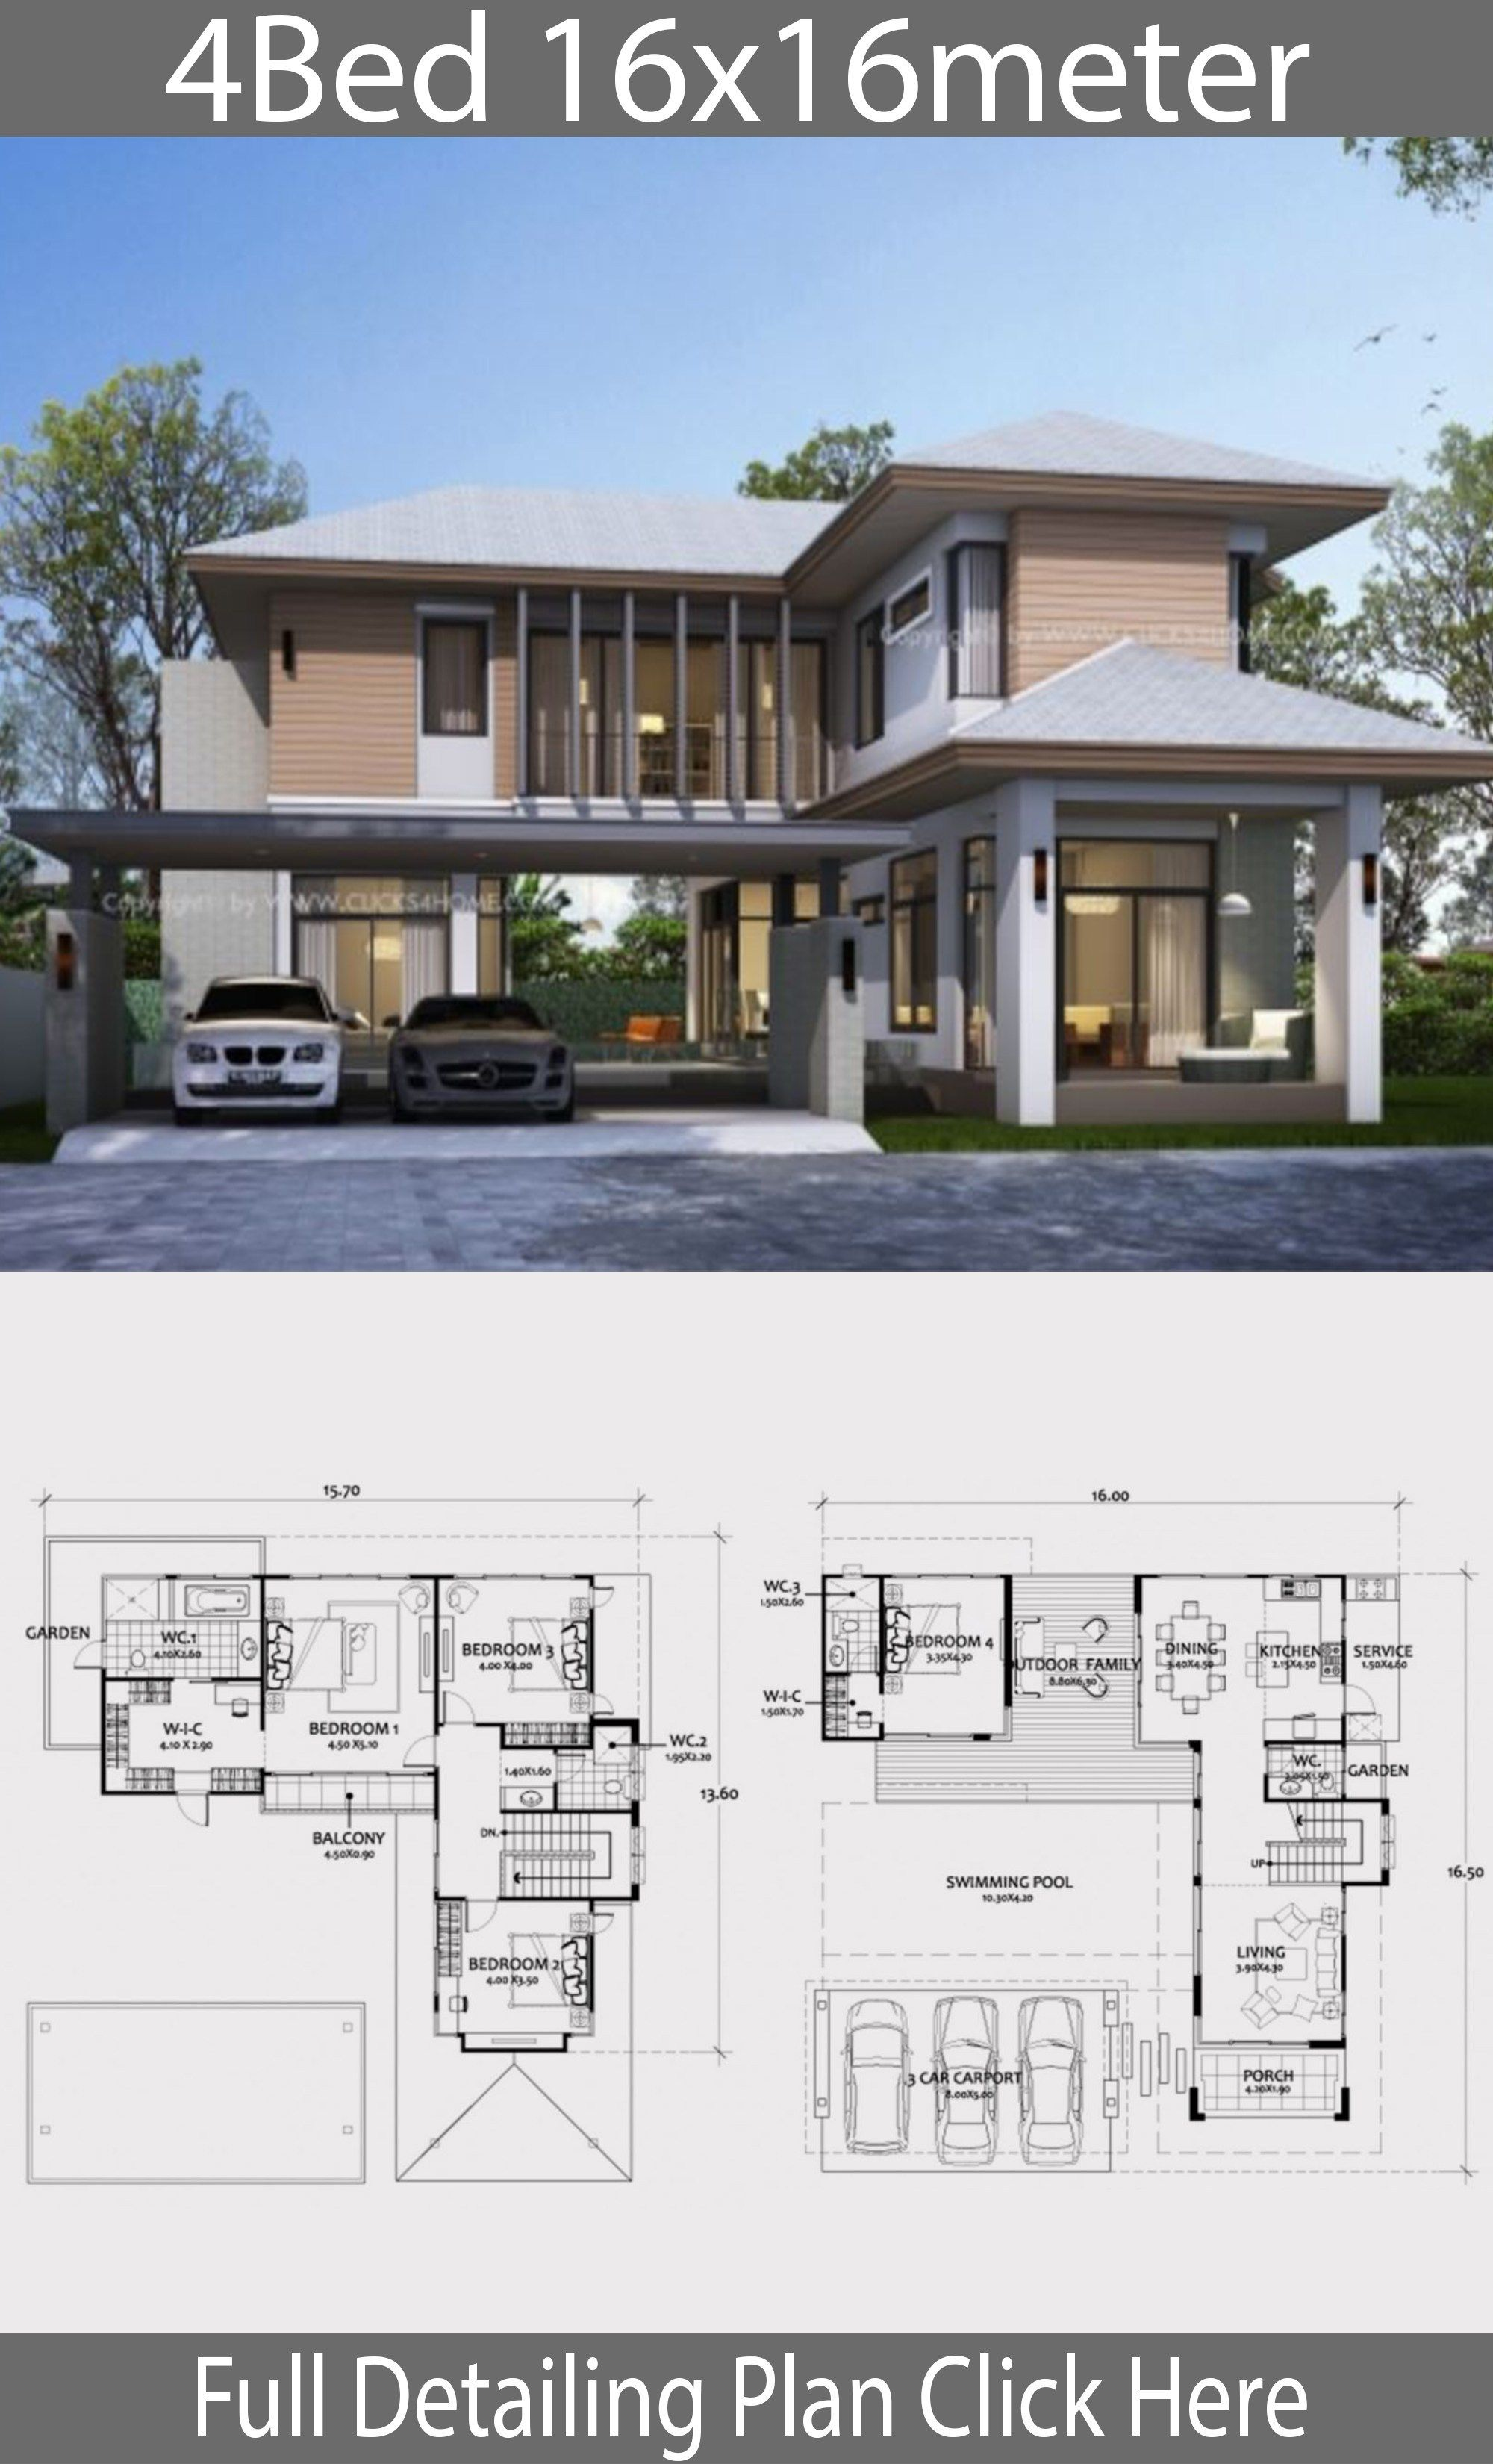 Home Design Plan 16x16m With 4 Bedrooms Home Design With Plan Modern Style House Plans Beautiful House Plans Bungalow House Design